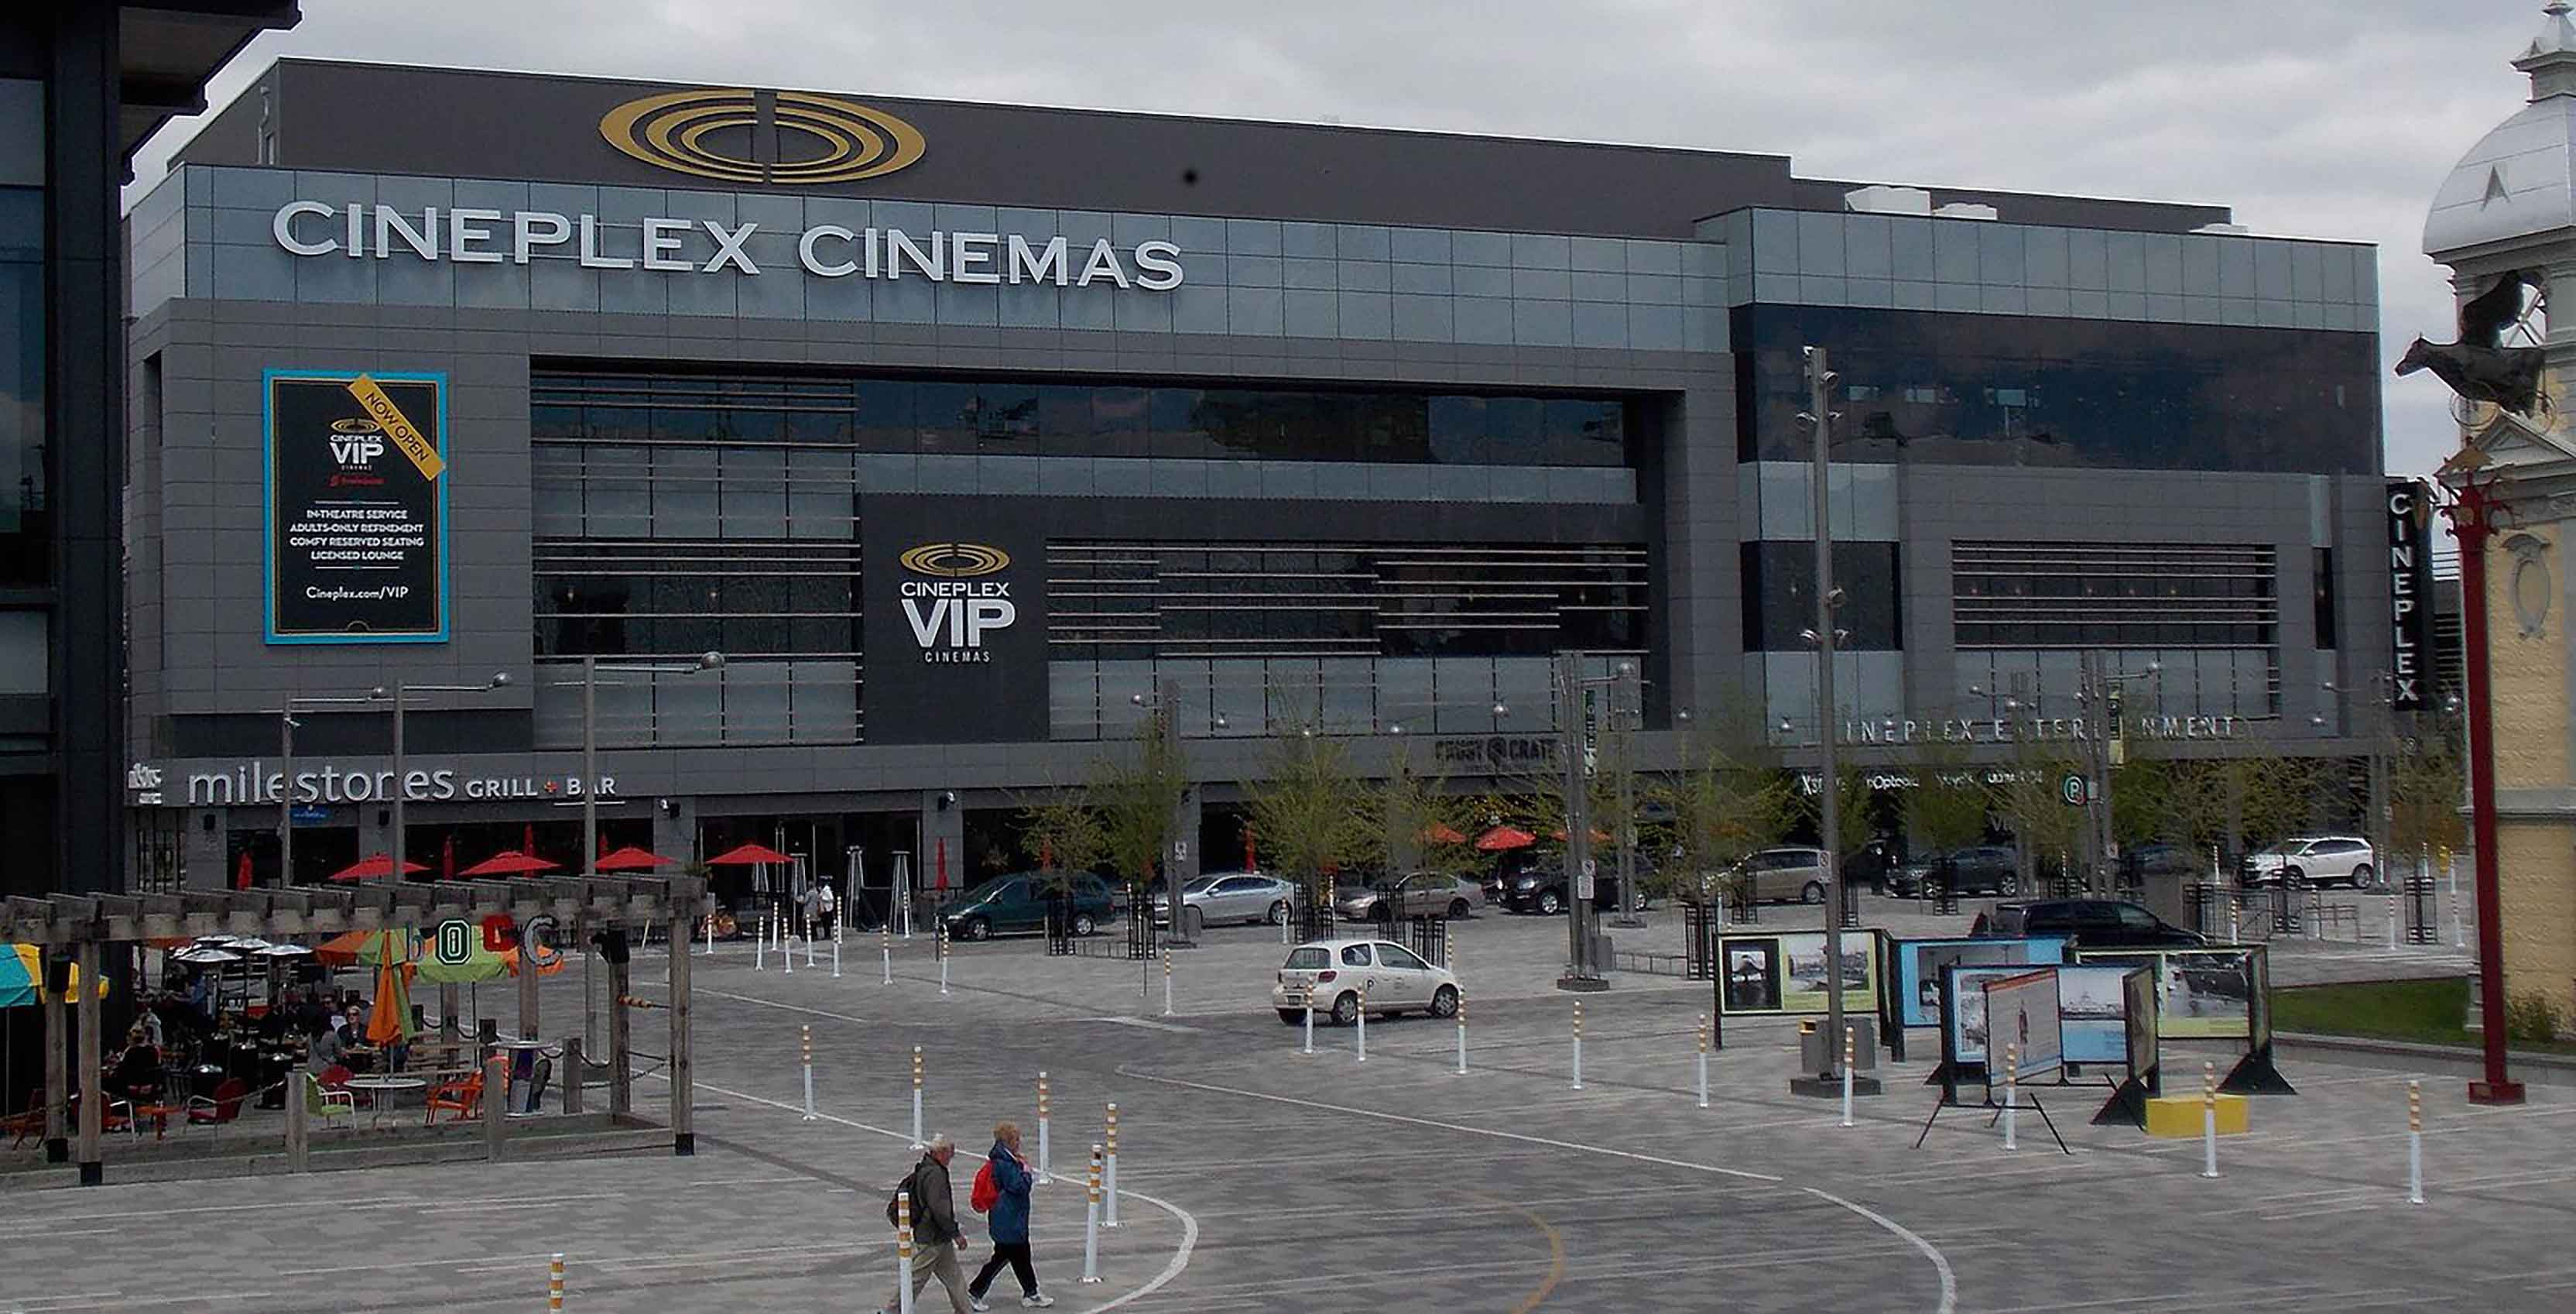 Cineplex Cinemas Lansdowne VIP - Cineplex Entertainment urges users to change passwords